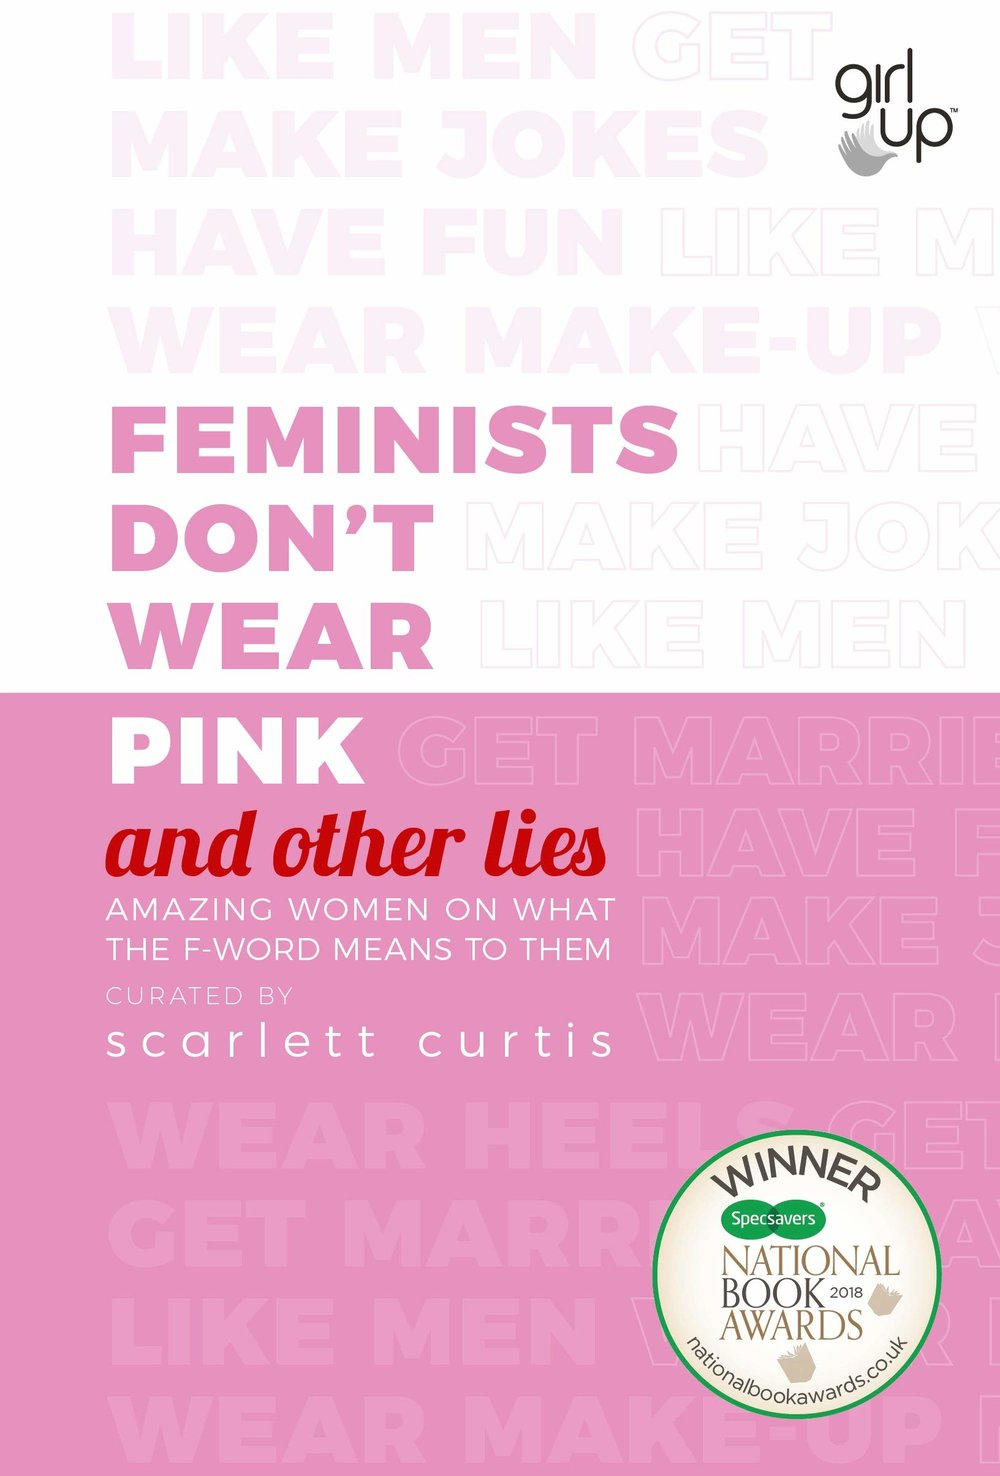 Image of the front cover of the book Feminists Don't Wear Pink